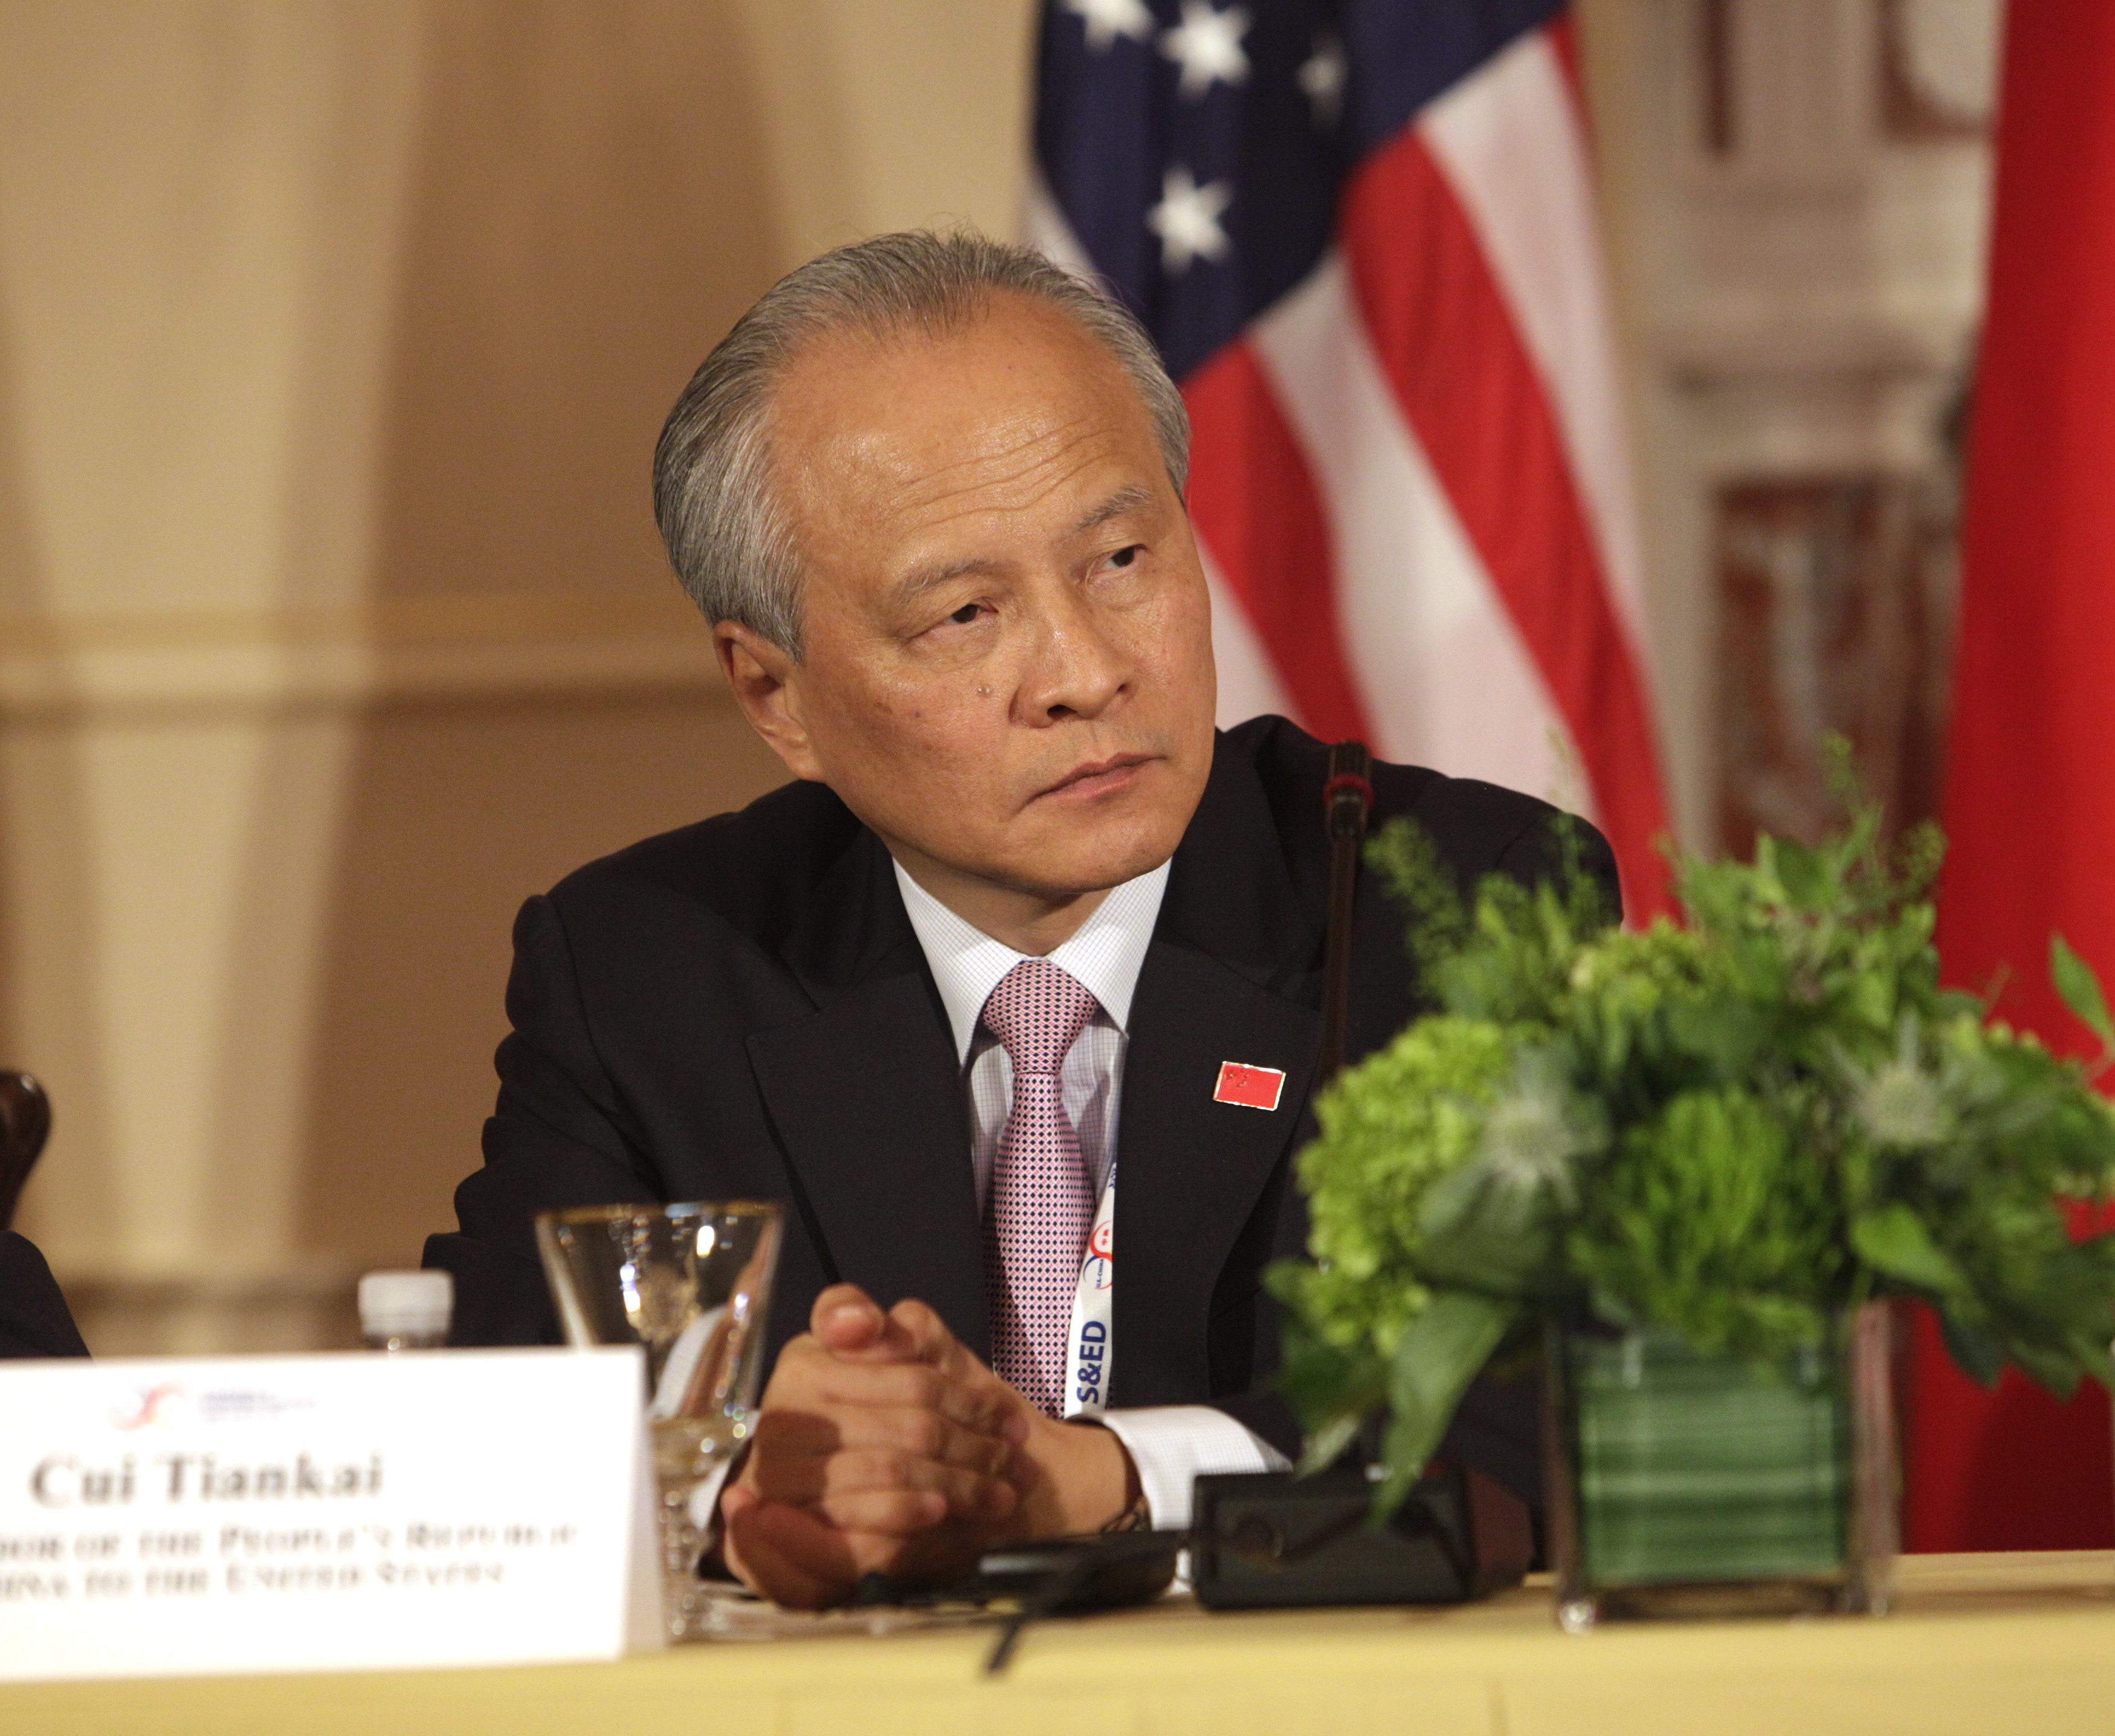 FILE - Cui Tiankai, China's Ambassador to the U.S. participates in the Plenary Session of the U.S.-China Consultation on People-to-People Exchange during the seventh U.S.-China Strategic and Economic Dialogue at the US State Department  in Washington